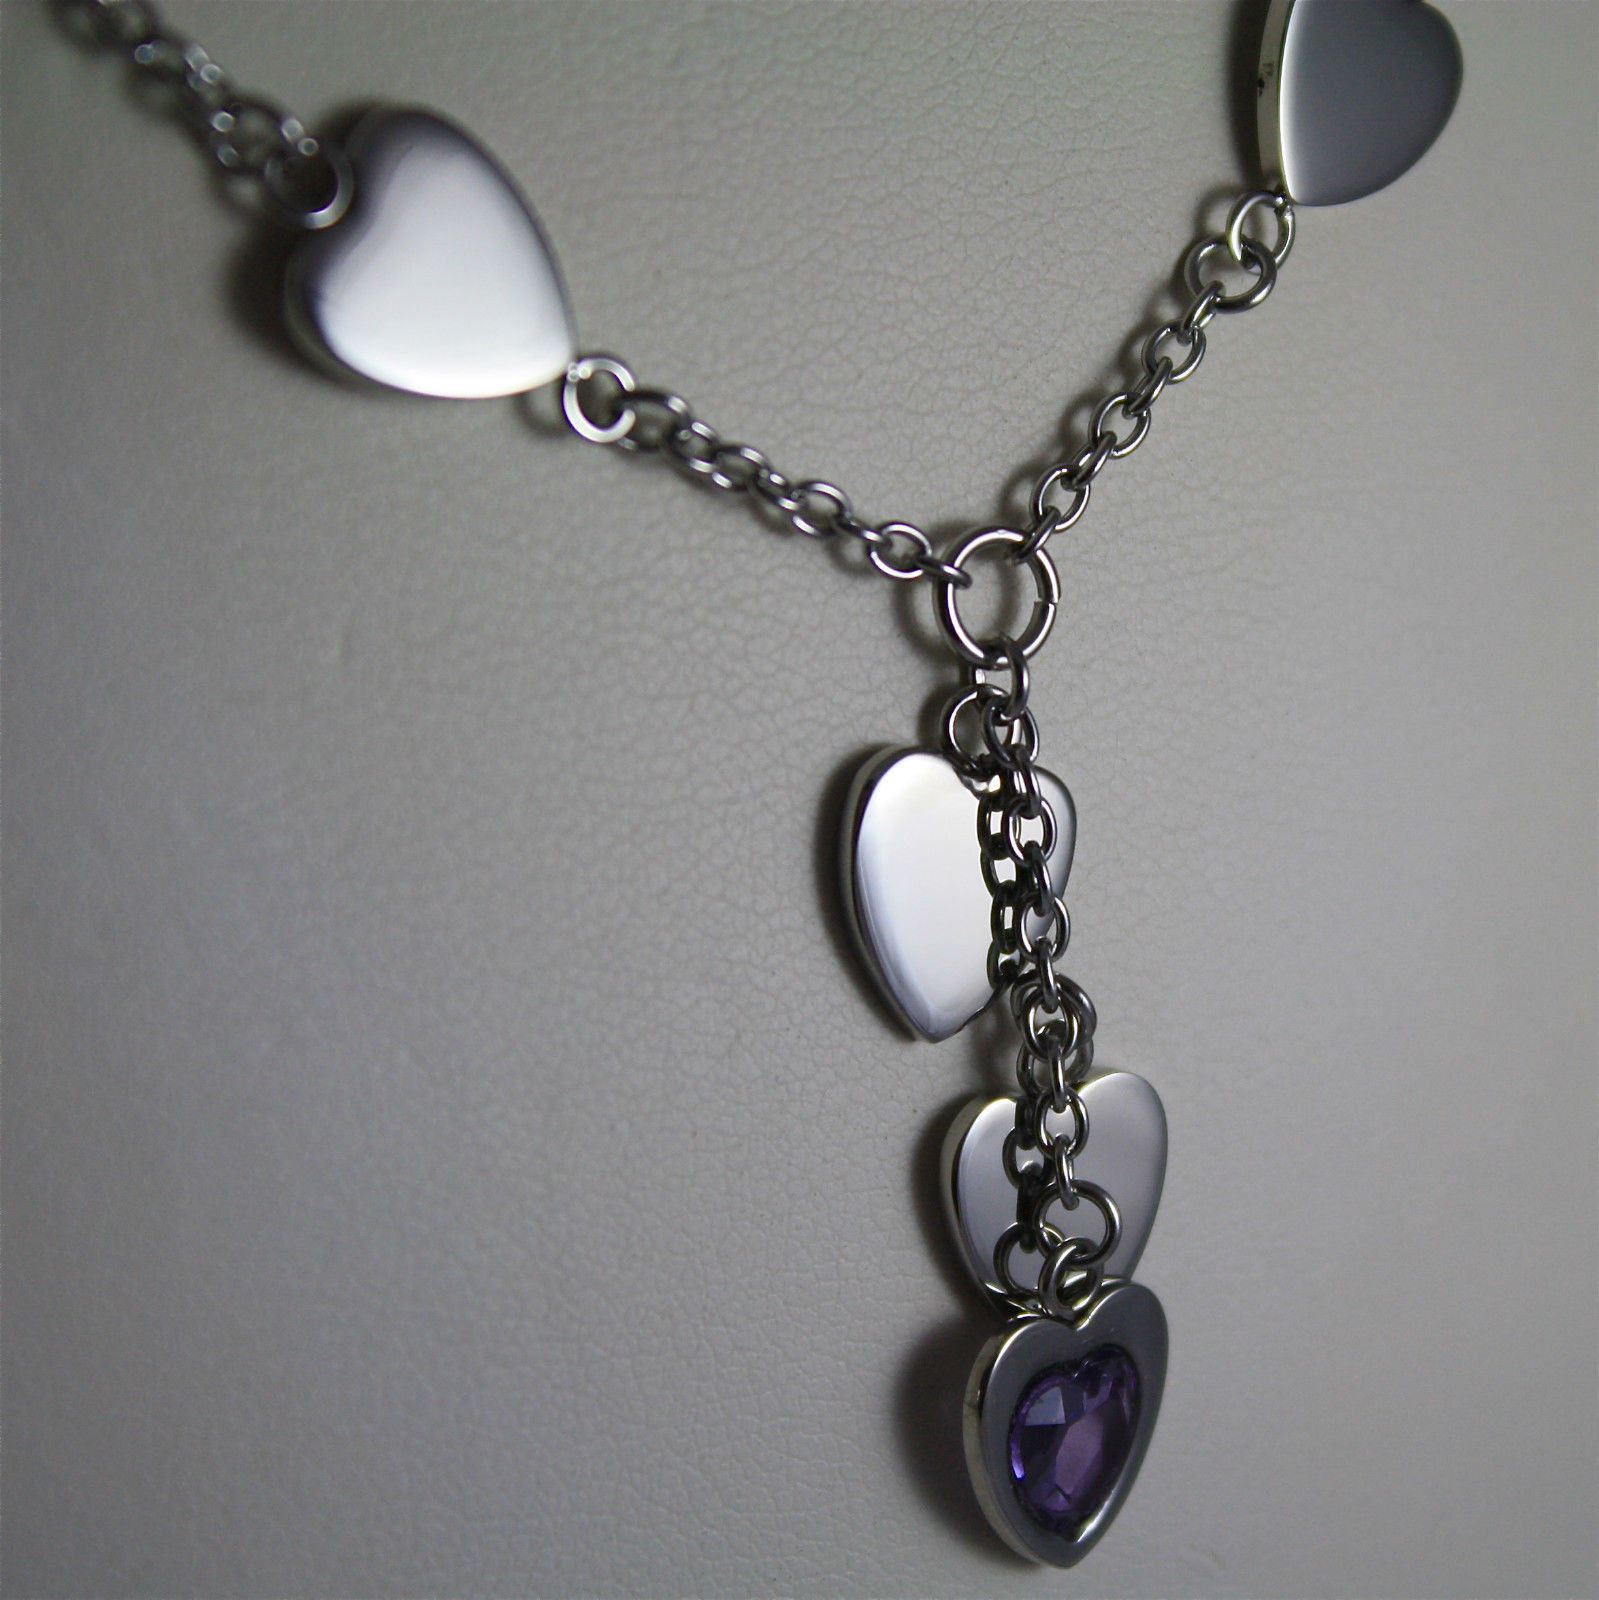 S'AGAPO' NECKLACE, 316L STEEL, CENTRAL HEARTS, SCARF, FACETED PURPLE CRYSTALS.